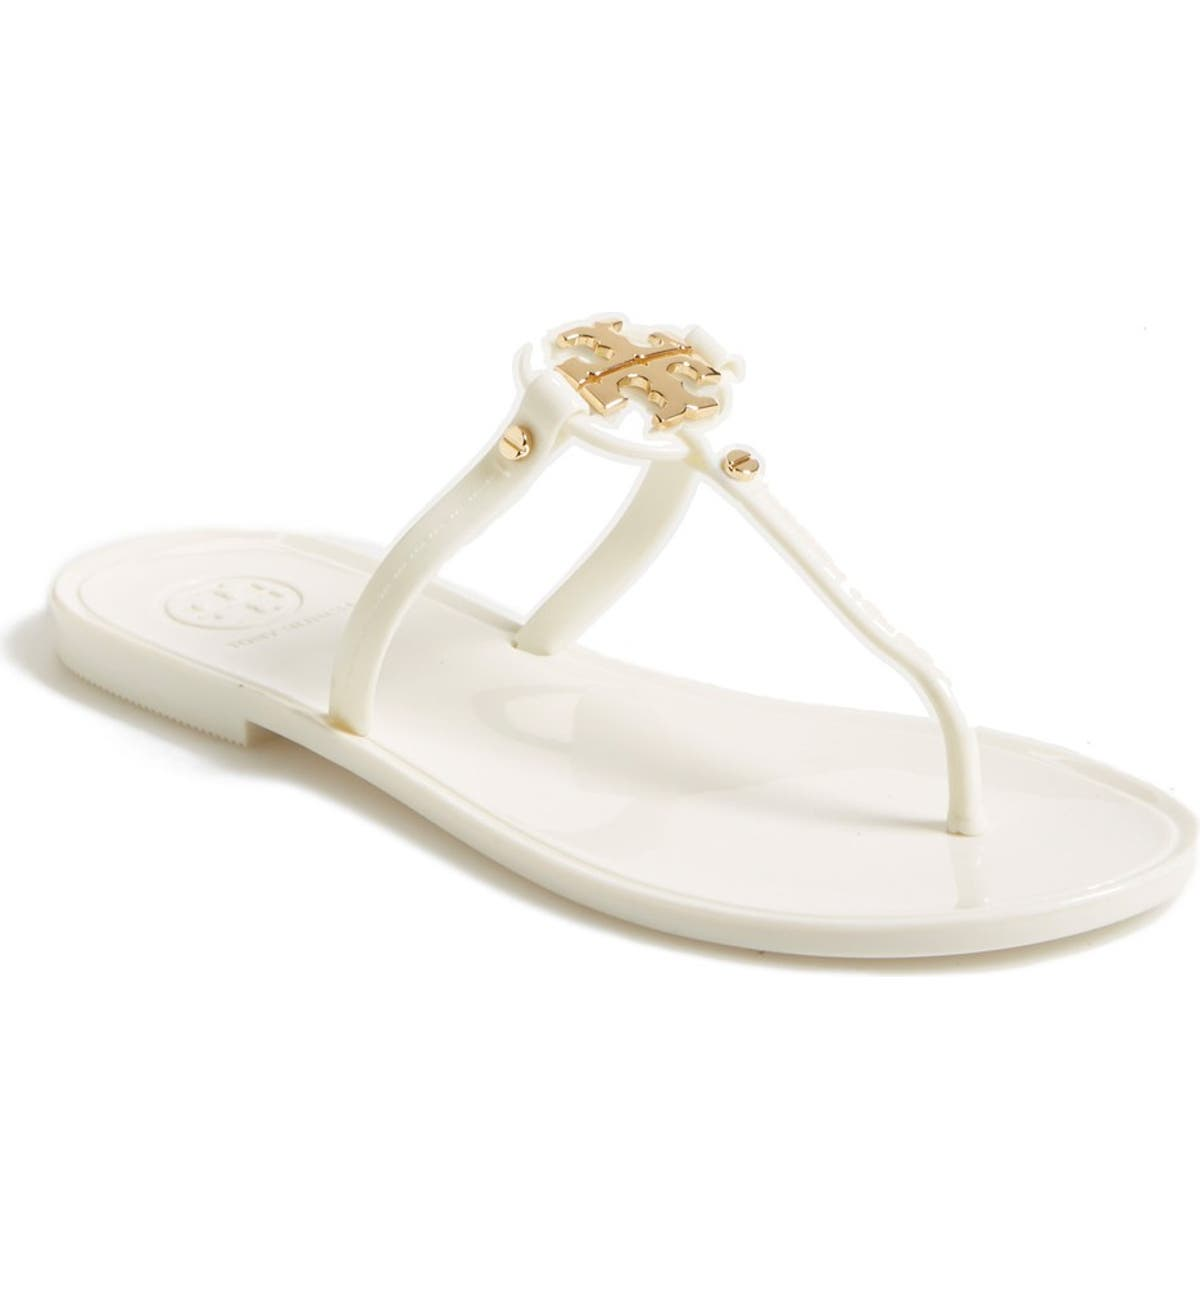 de4e19279 Tory Burch  Mini Miller  Flat Sandal (Women)